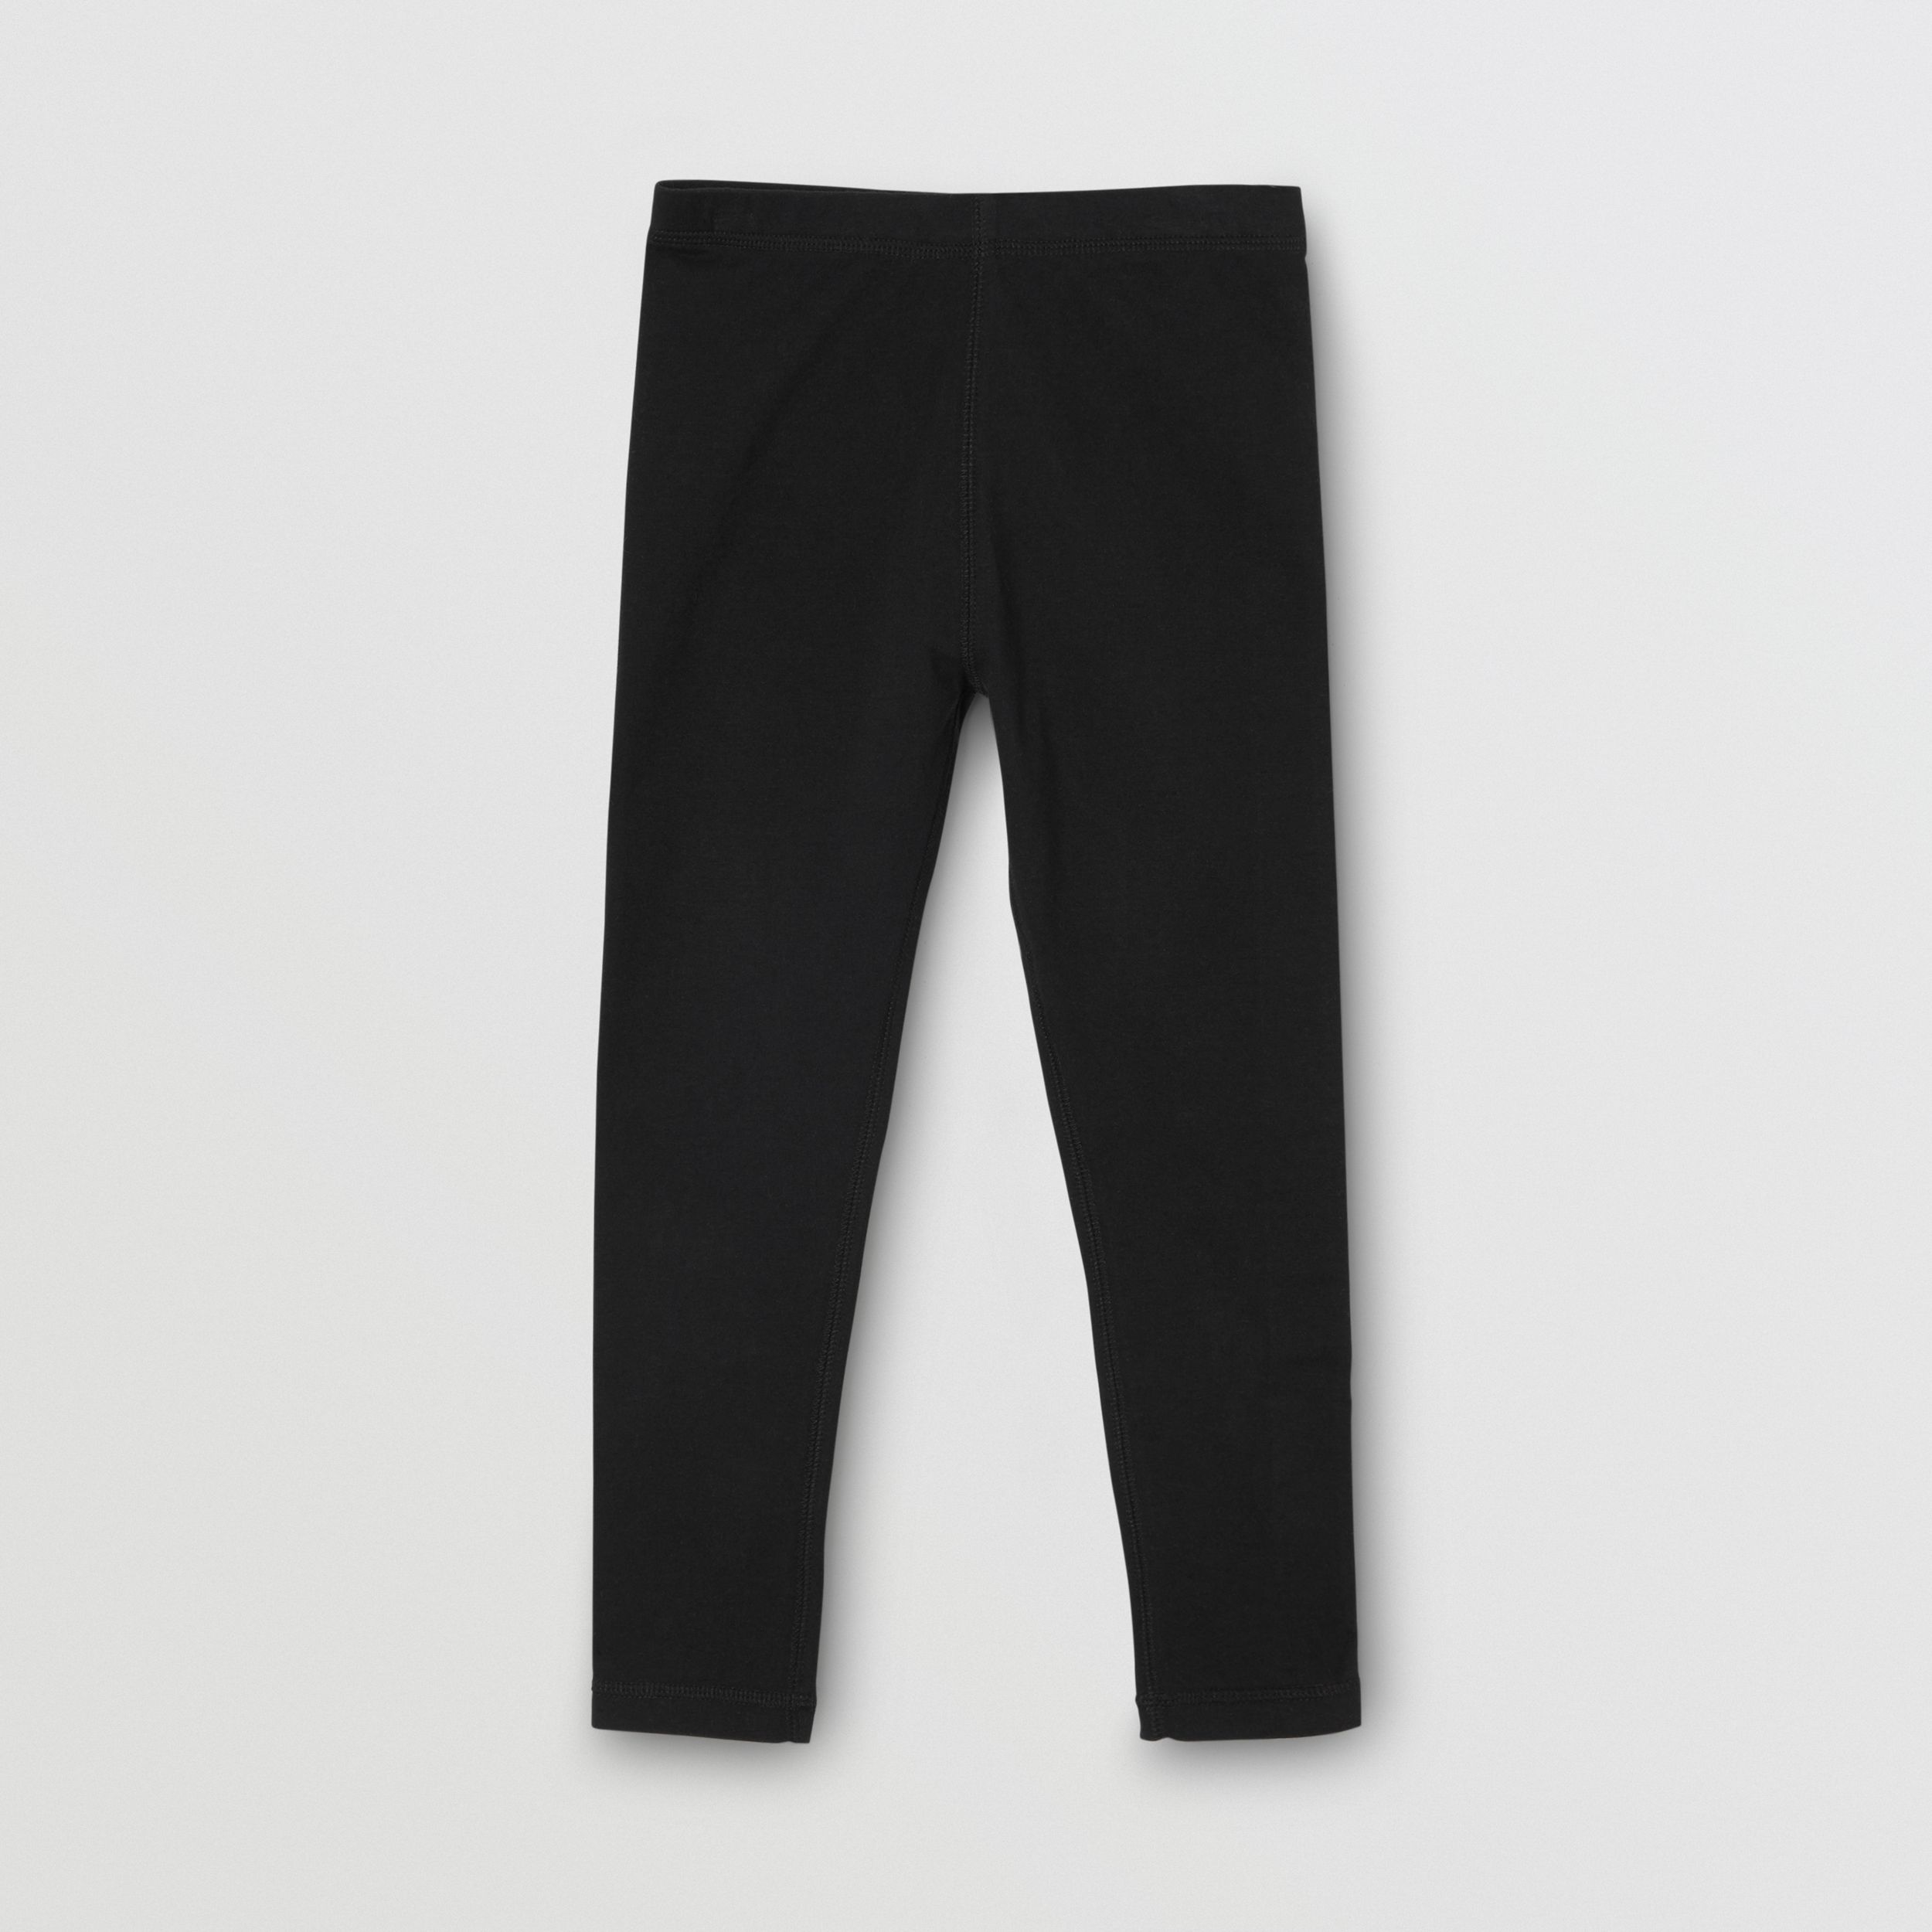 Logo Detail Stretch Cotton Leggings in Black | Burberry - 1